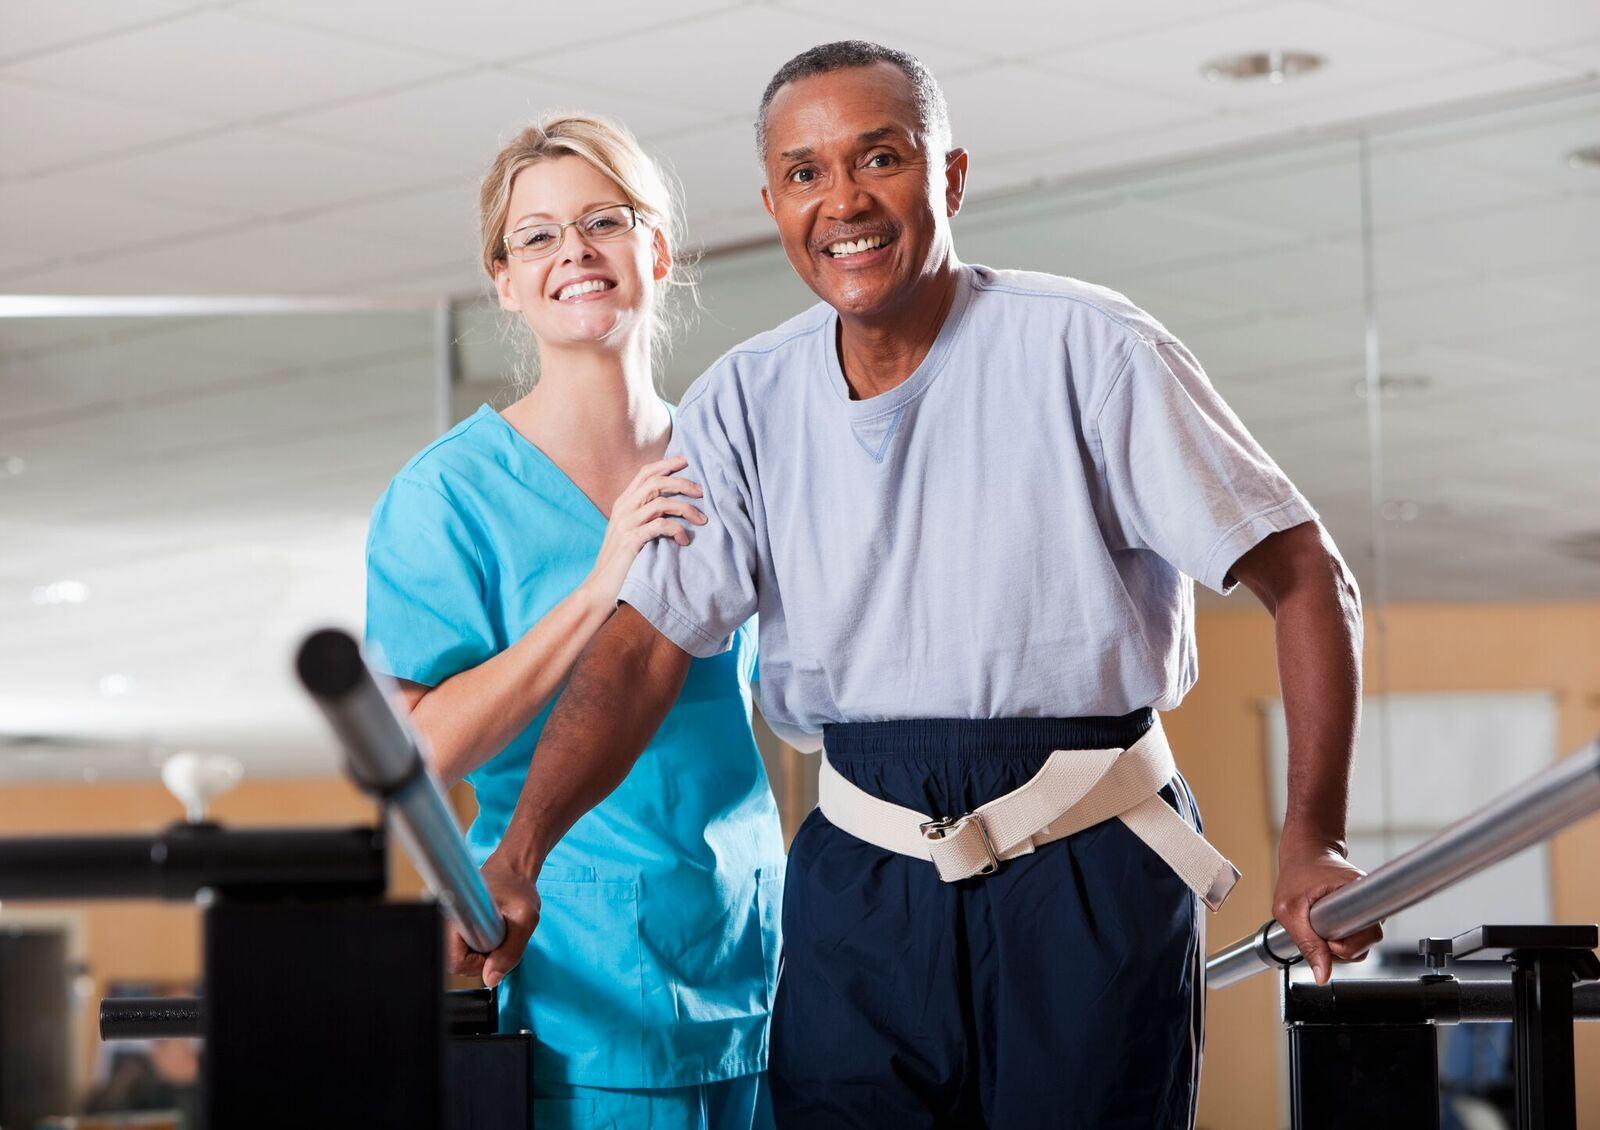 Home Rehabilitation Equipment Geriatric General Physical Therapy Bte Employment Testing